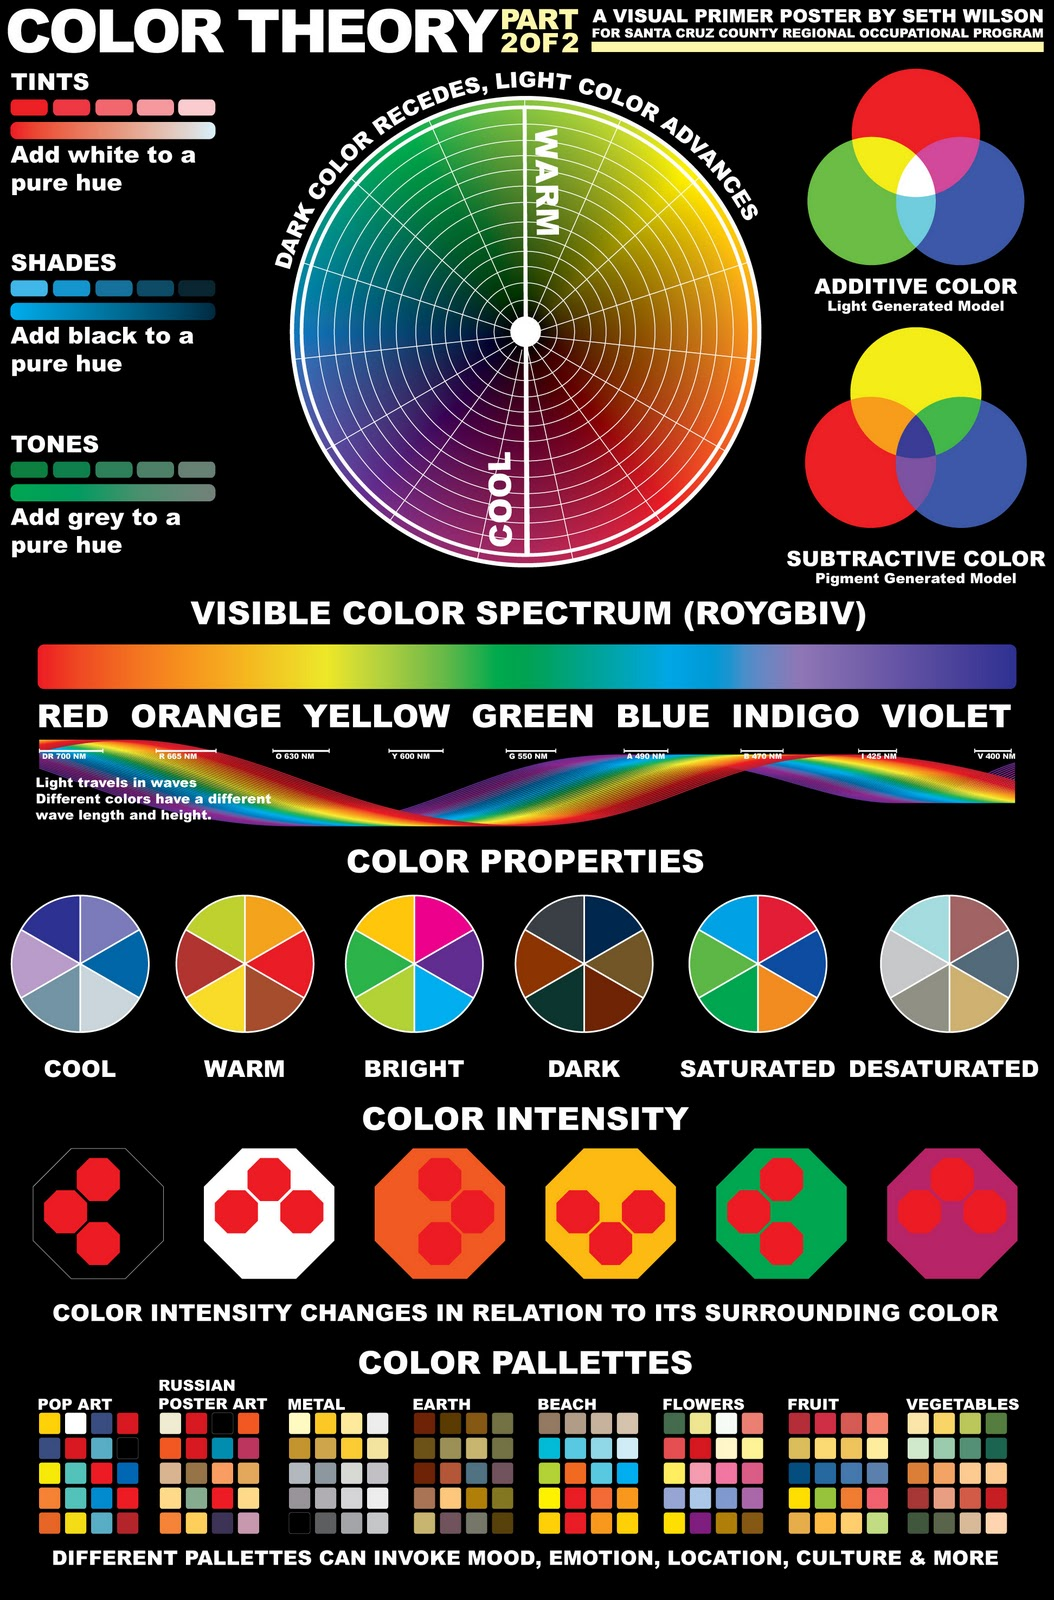 Elements Of Design Tone : Inkfumes poster designs color design typography theory